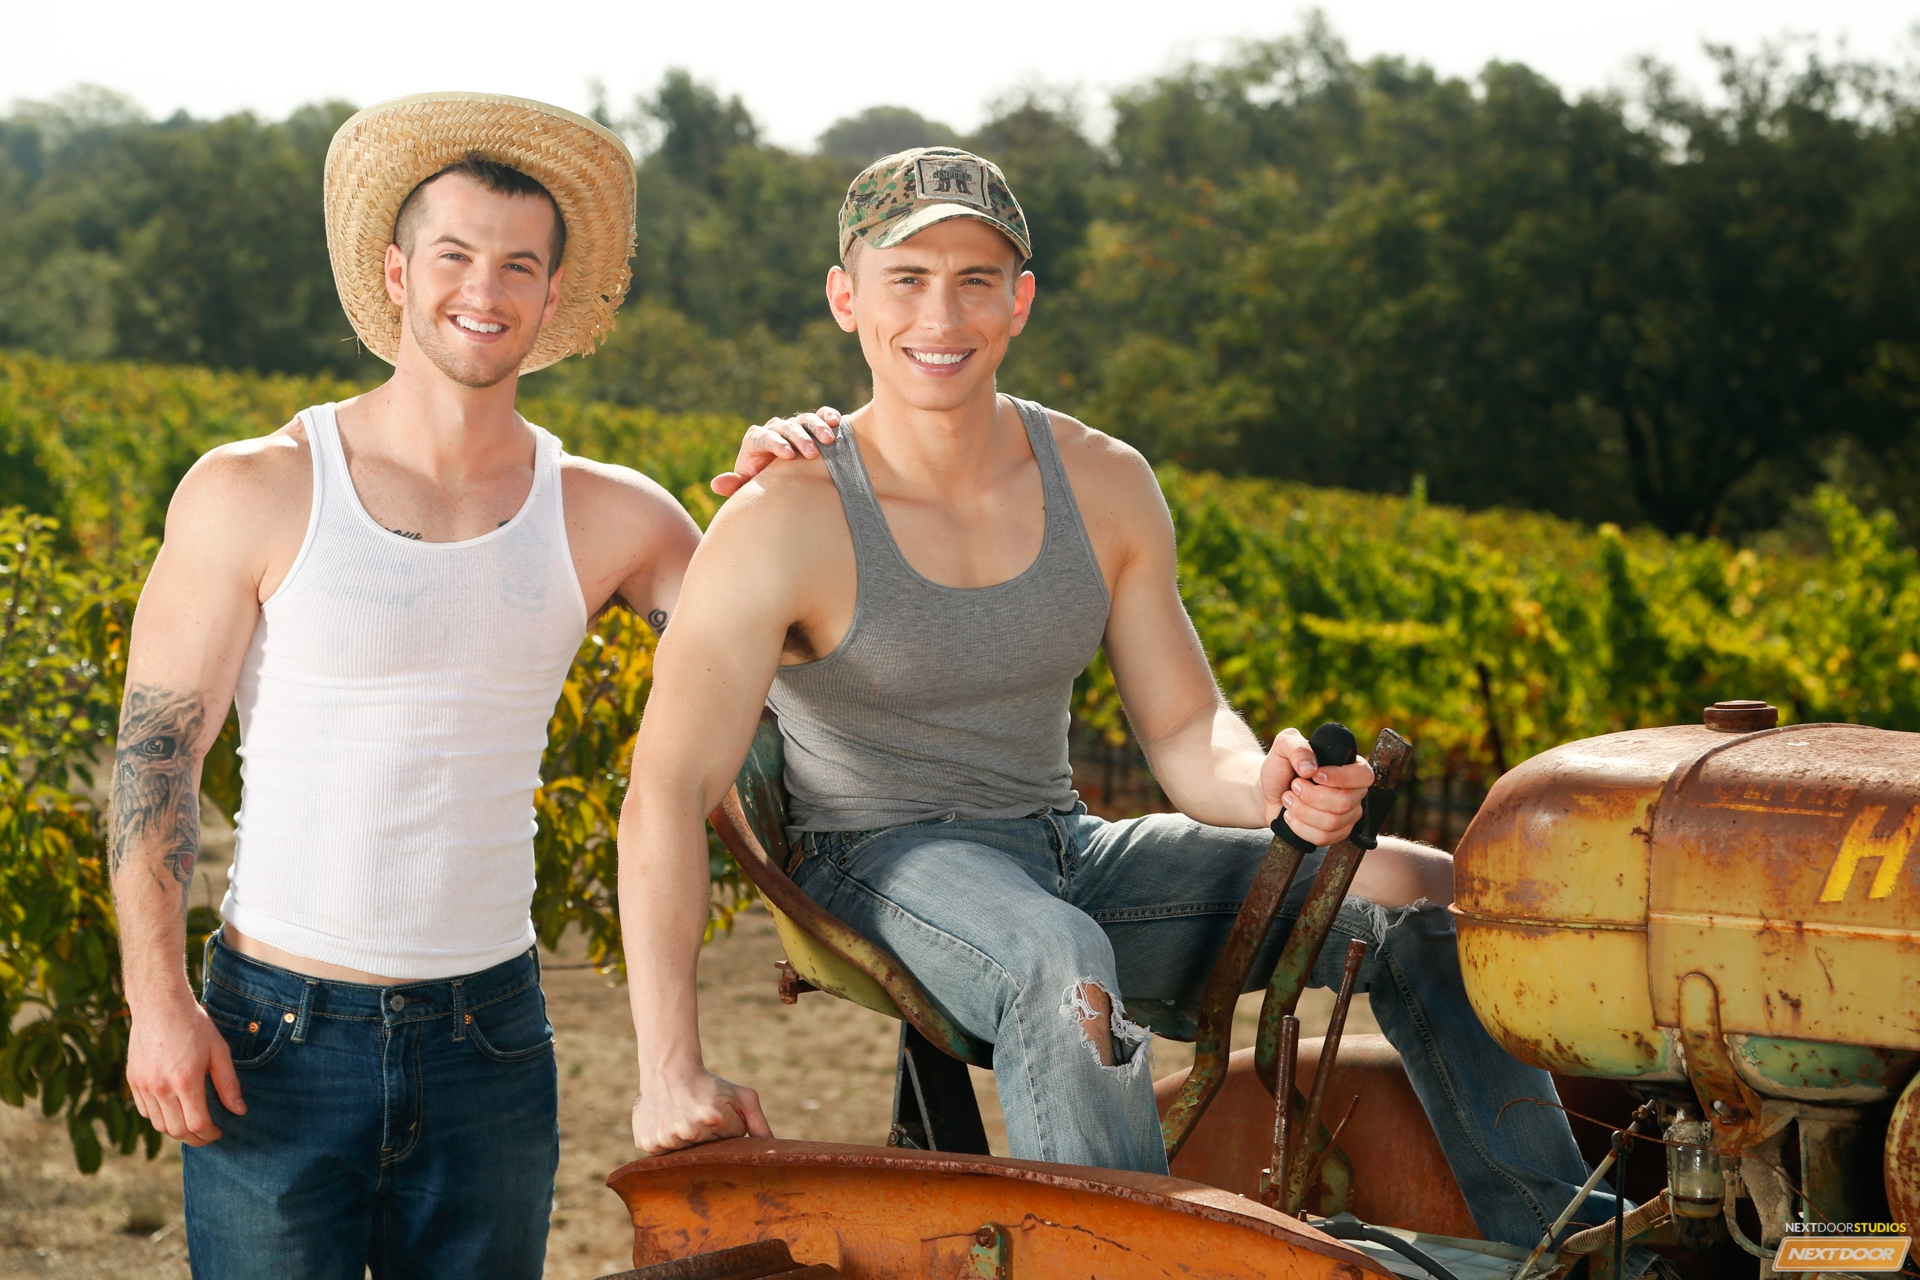 In a beeline Quentin Gainz's tractor breaks down on the farm, Dante Martin, who's inviting a tour of the property, happens upon him.  Dante LIKES what he sees!  He especially likes Quentin's nice, plump ass and strong physique.  Dante decides to see even